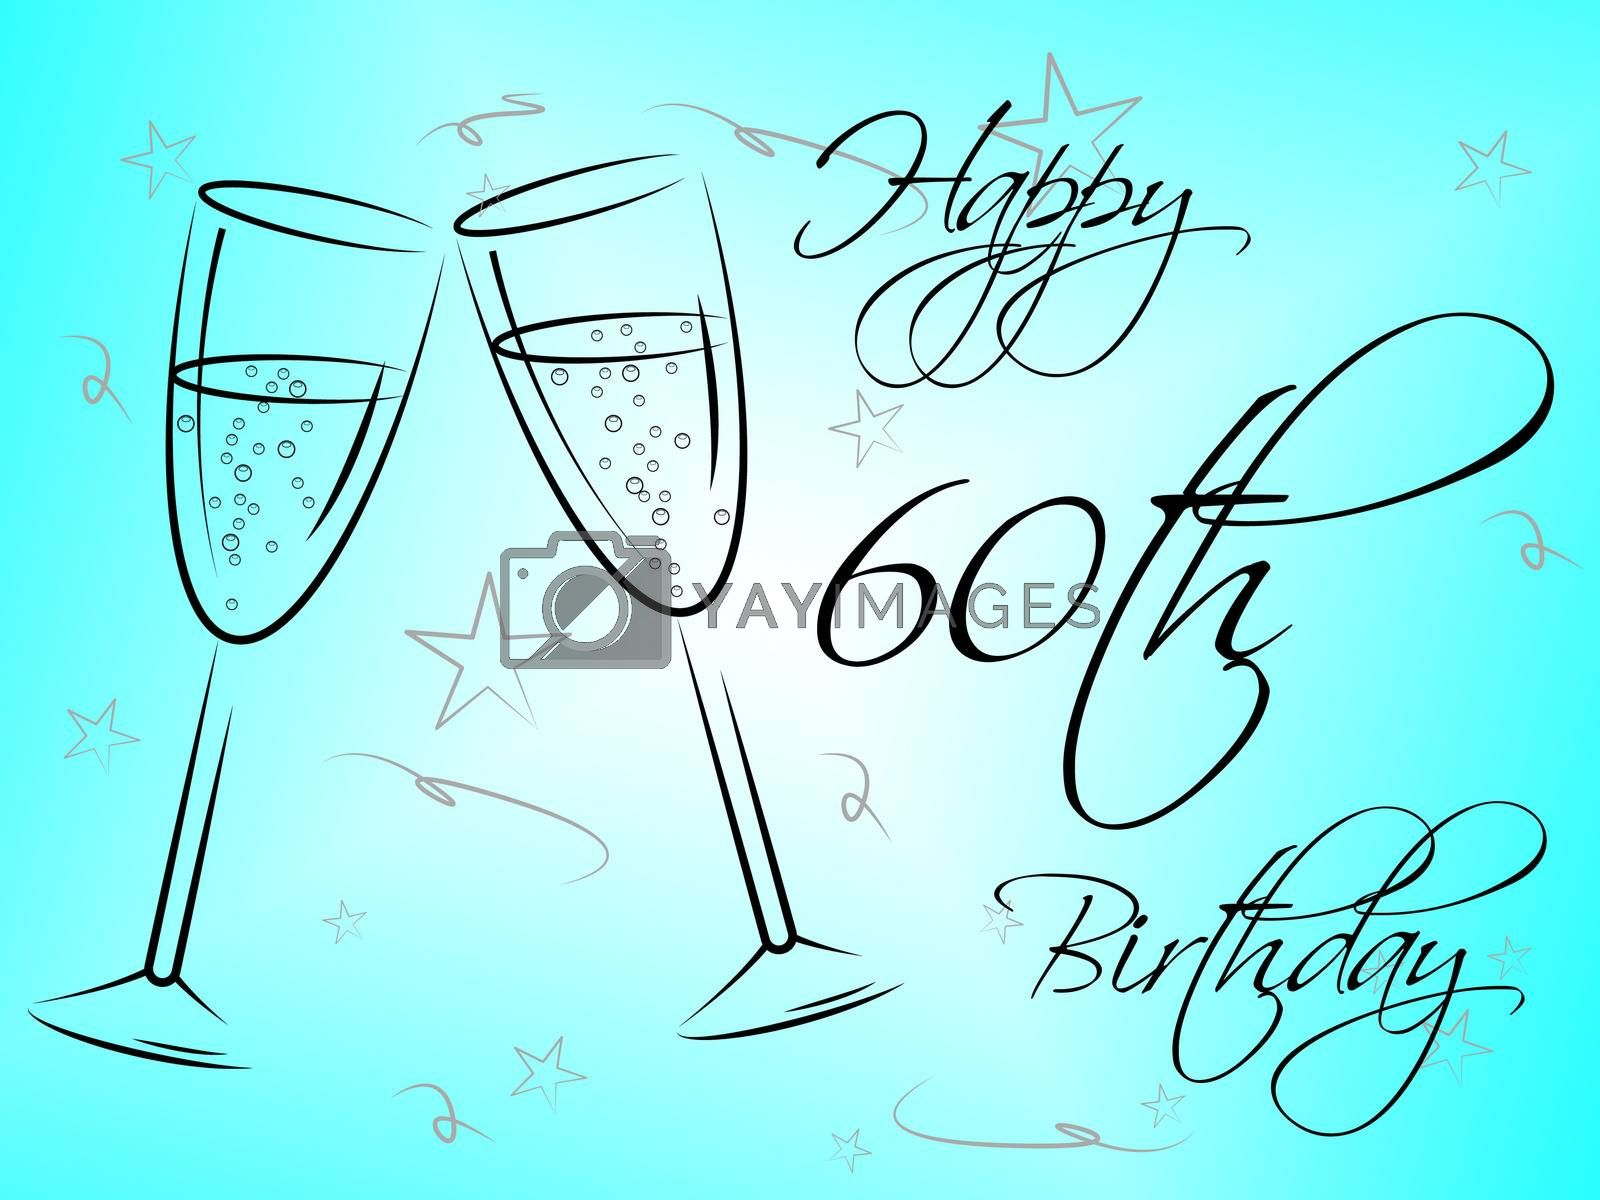 Happy Sixtieth Birthday Shows Congratulation Fun And Greetings by stuartmiles